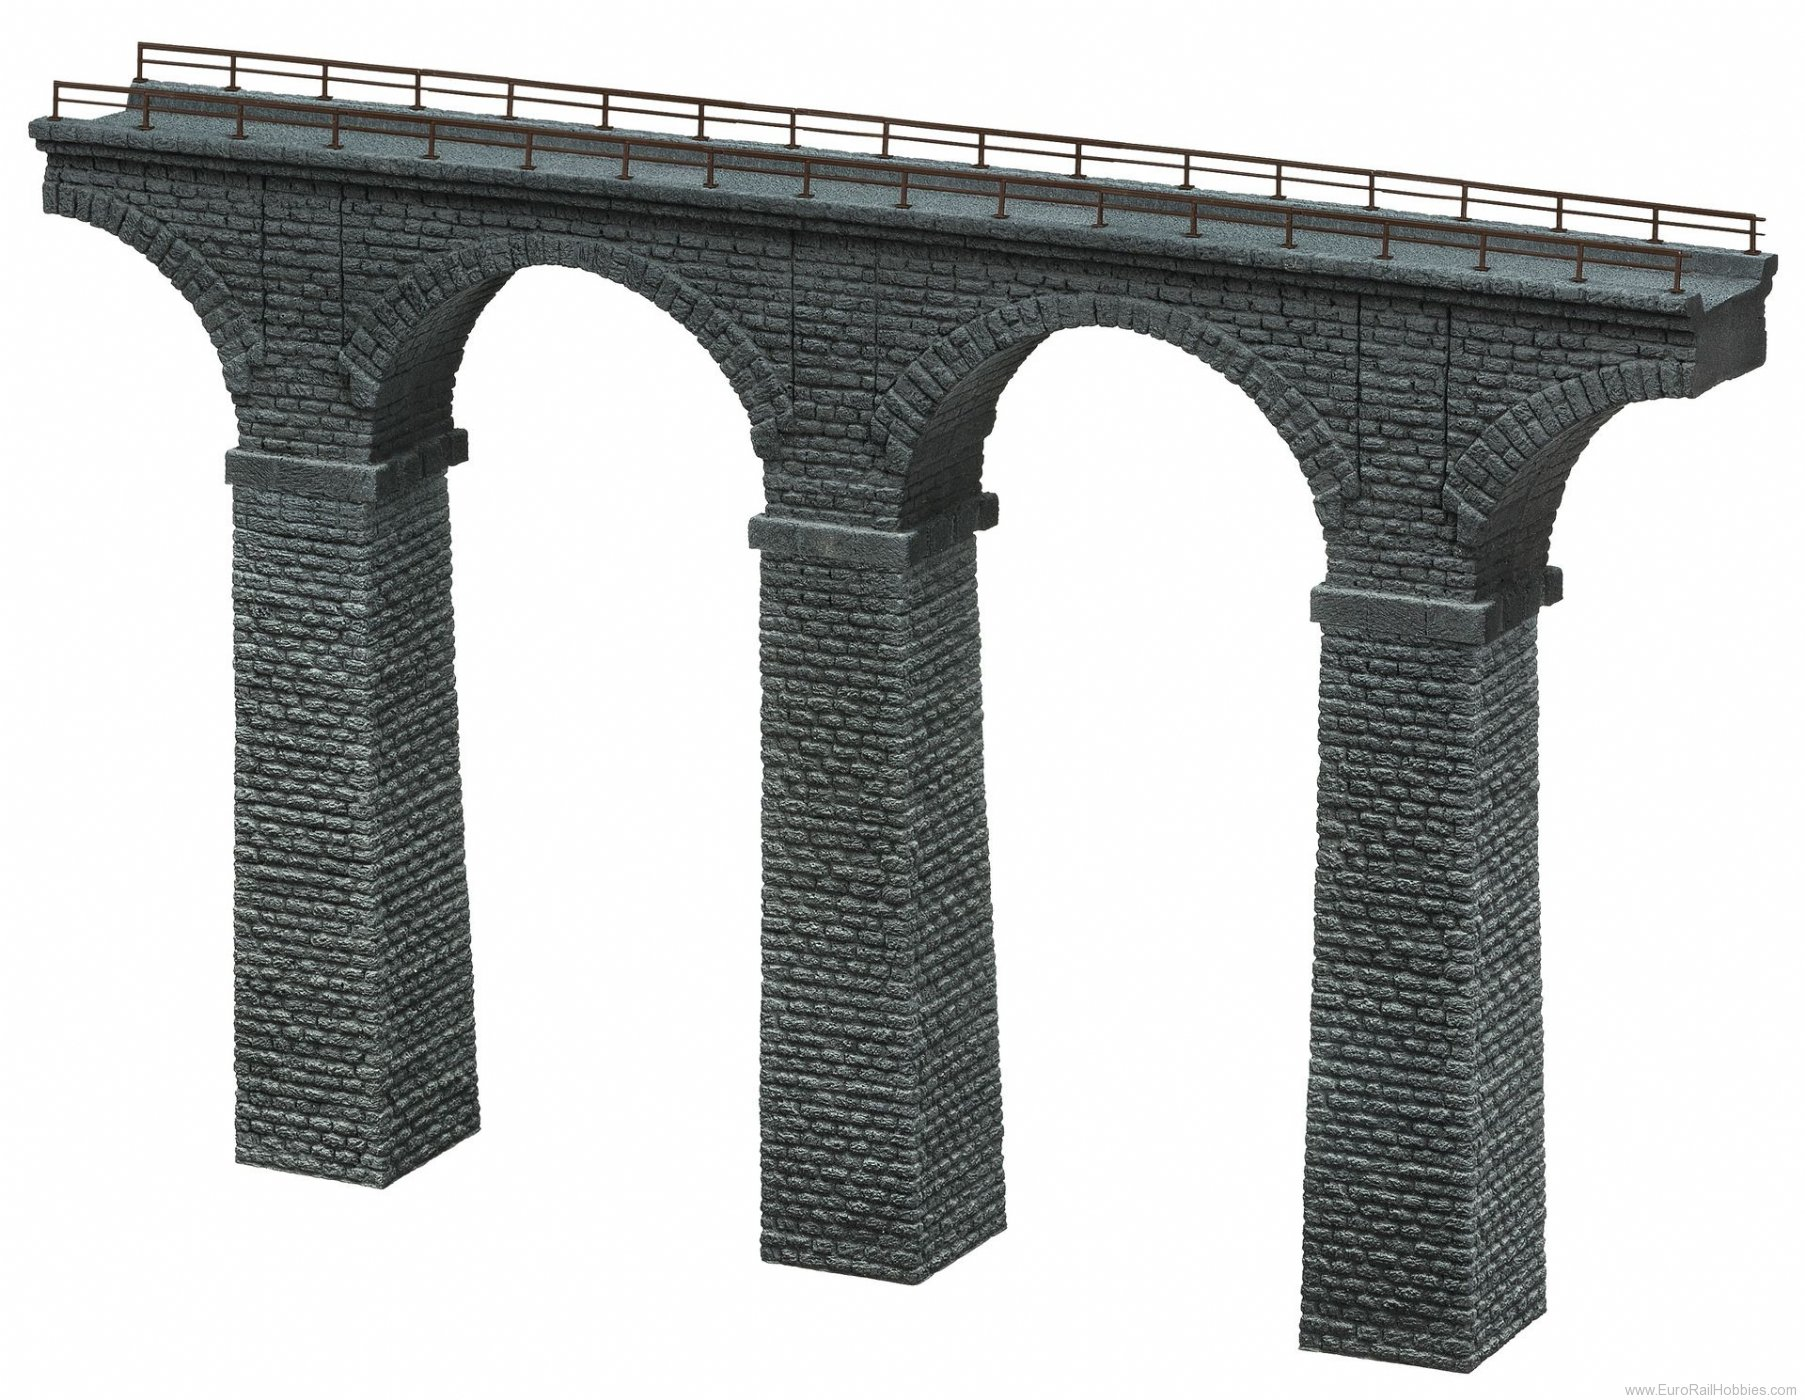 Roco 15011 Ravenna-Viaduct Kit